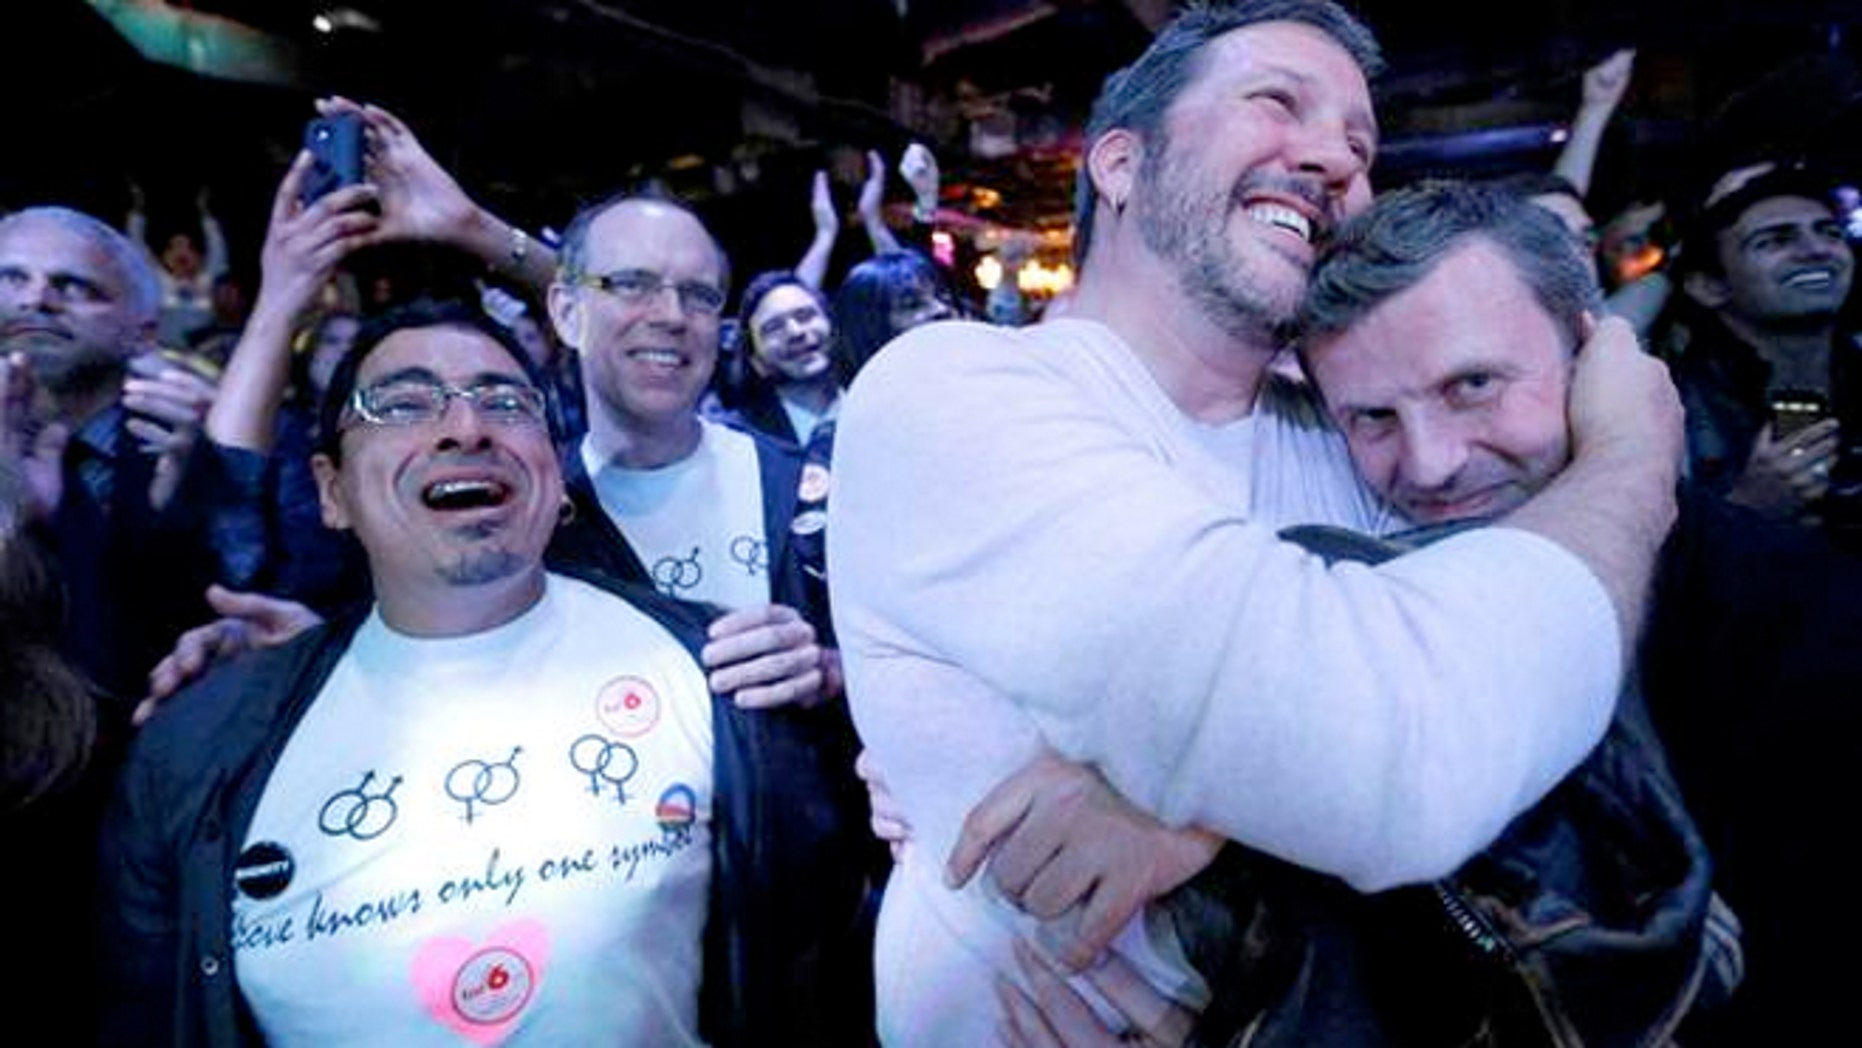 Party-goers celebrate at an Election Night party in Baltimore after voters passed a referendum approving same sex marriage in Maryland.